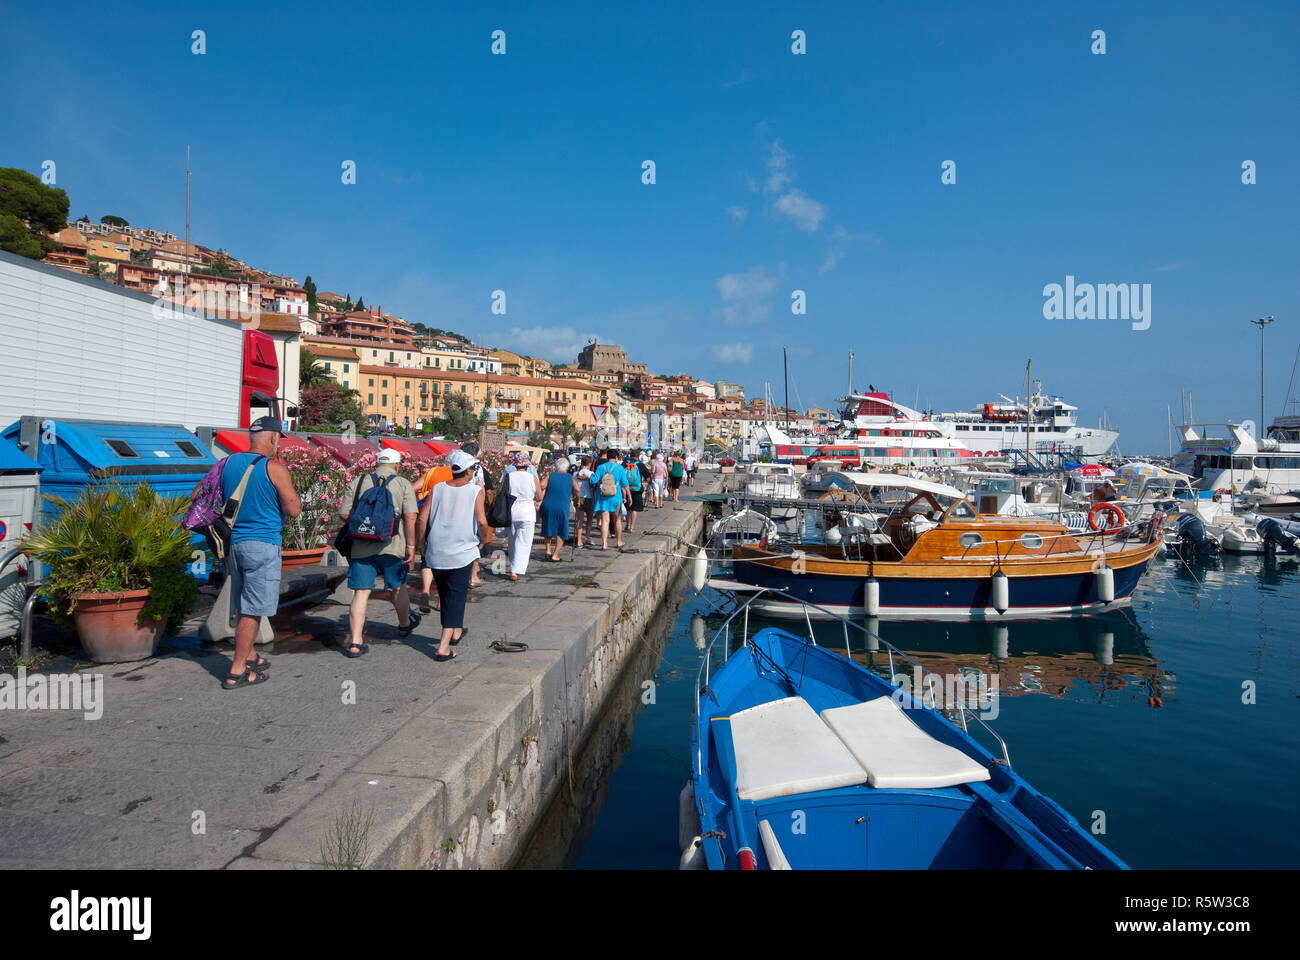 Queue of tourists boarding a ferry boat at Porto Santo Stefano, Grosseto, Tuscany, Italy - Stock Image